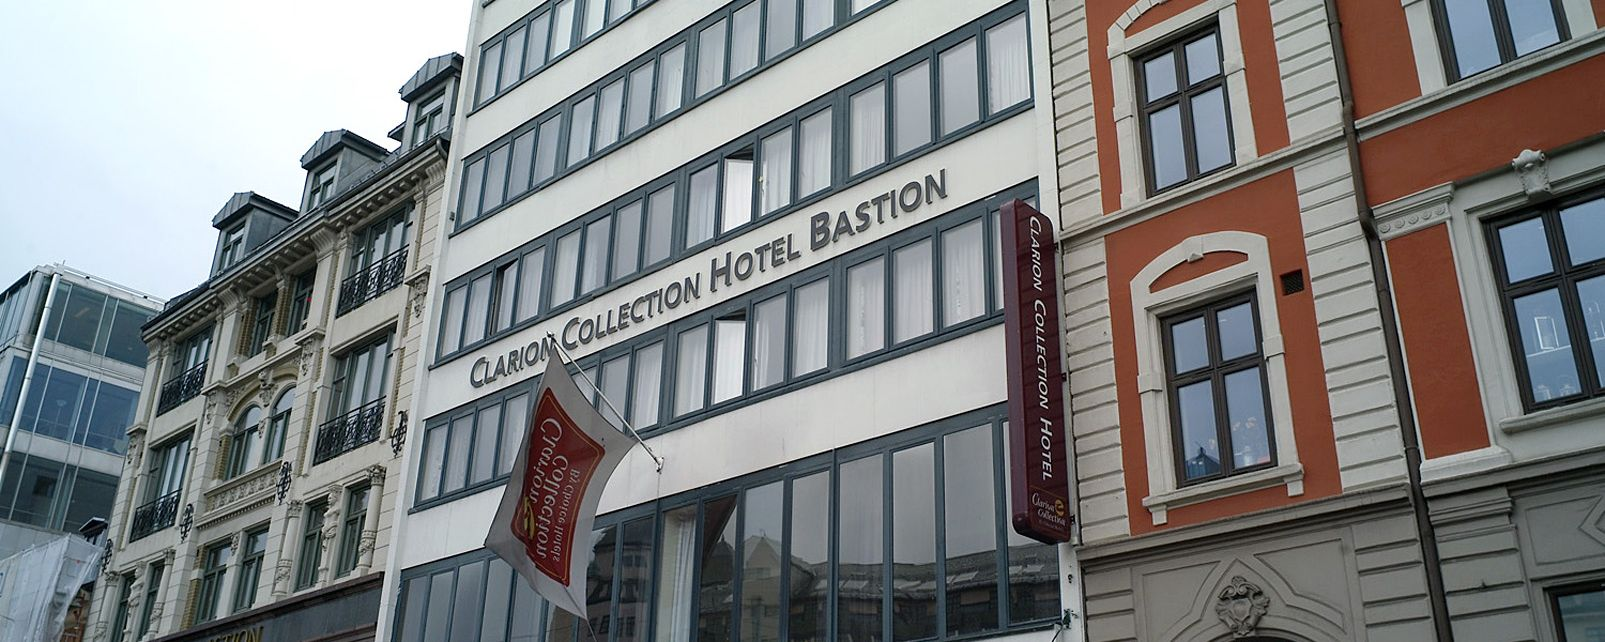 Hôtel Clarion Collection Bastion